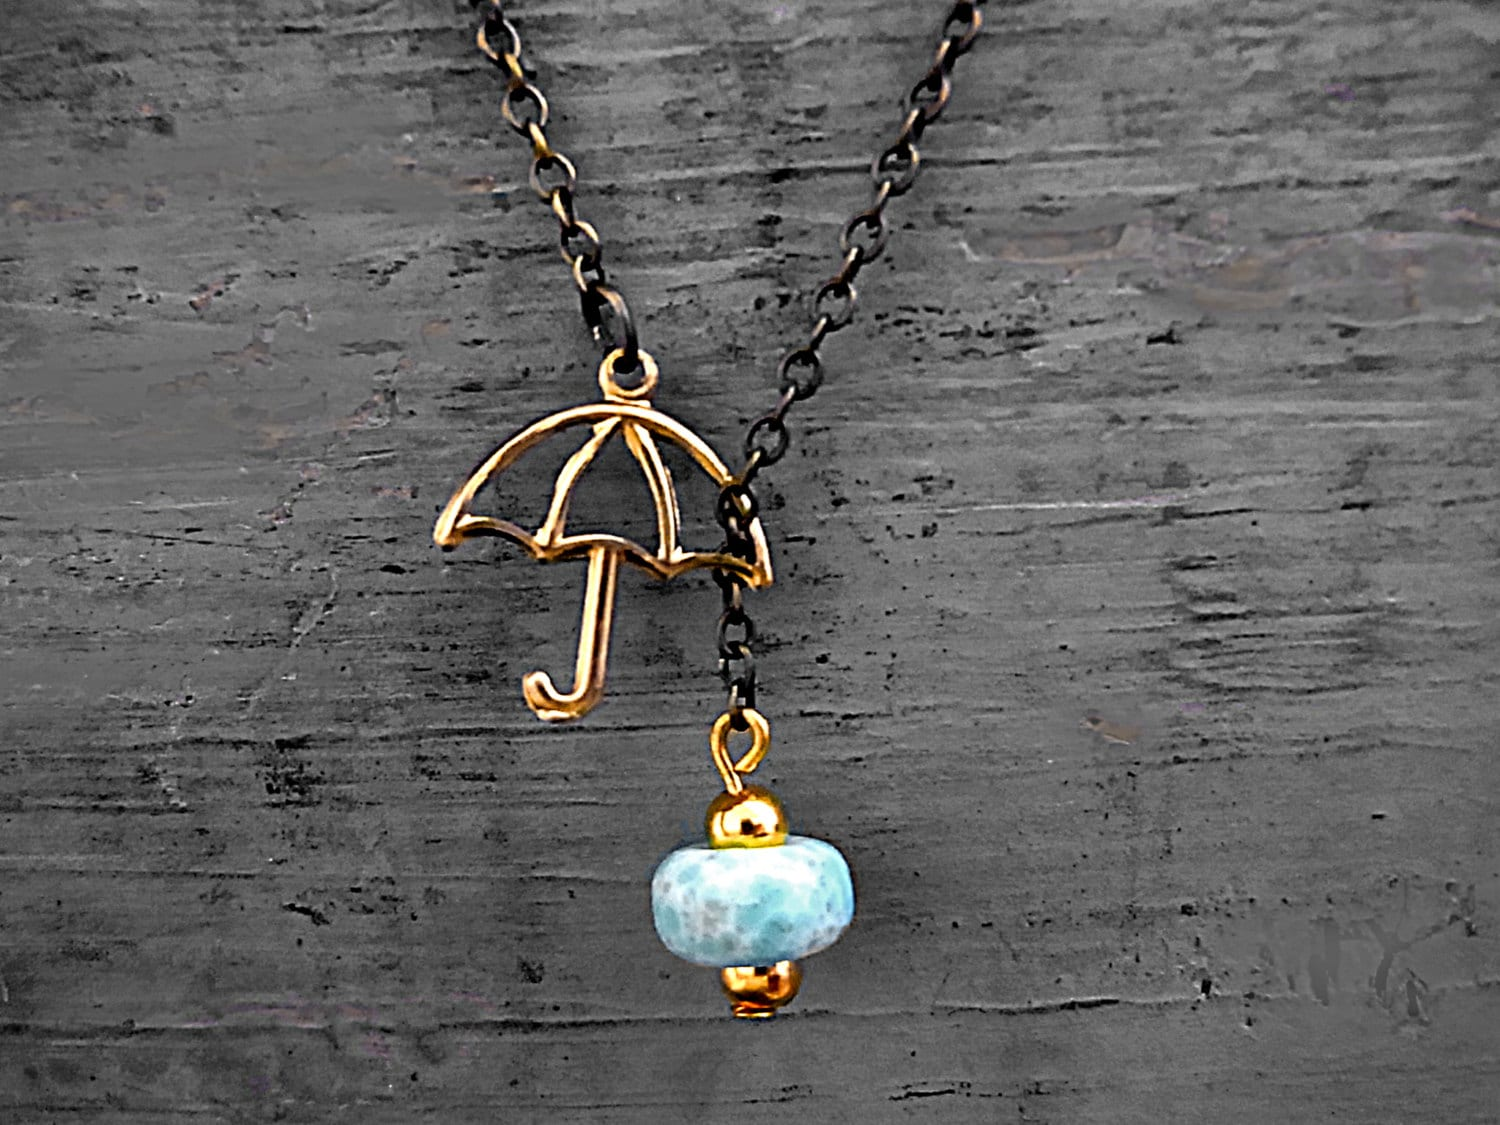 SUMMER RAIN - lariat necklace with vintage turquoise drop and little umbrella - VillaSorgenfrei